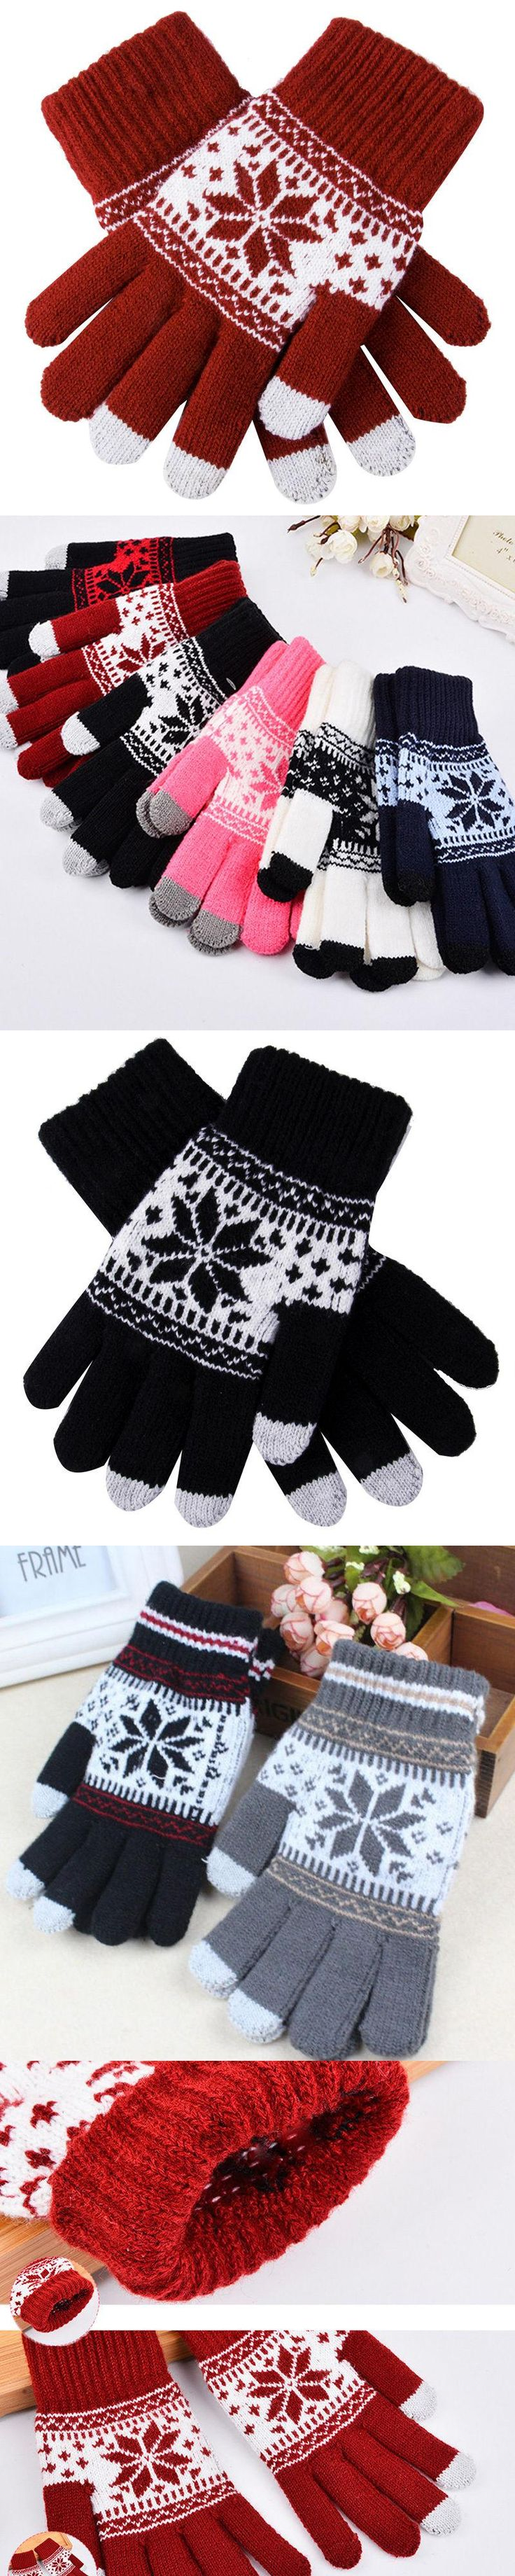 New Fashion Warm Winter Gloves Knitted Touch Gloves Men Women Gloves Touch Screen Glove